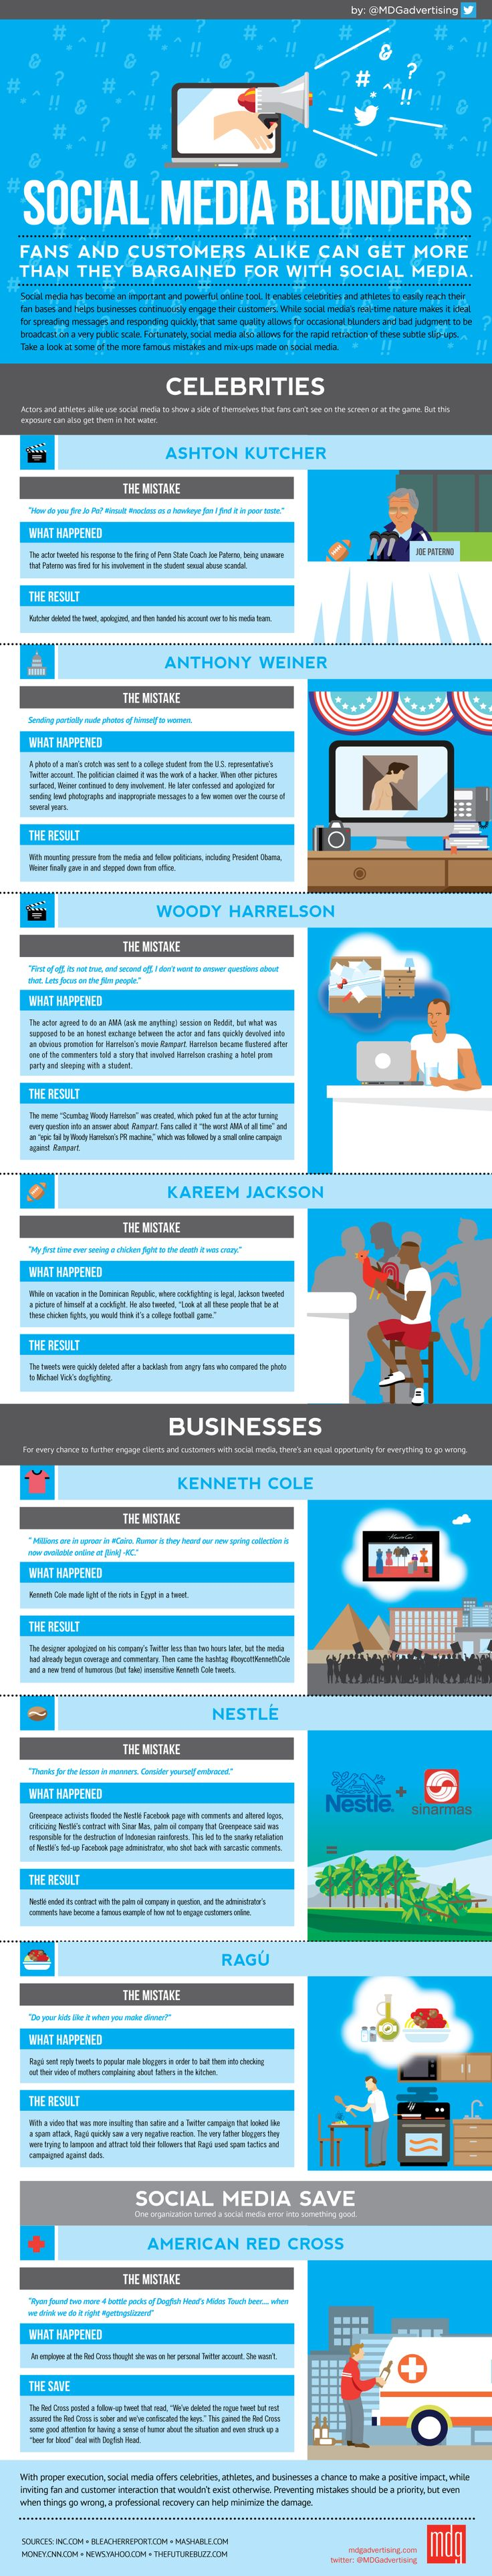 Infographic Blunders in Social Media History. Examples to avoid. By @MDGadvertising.